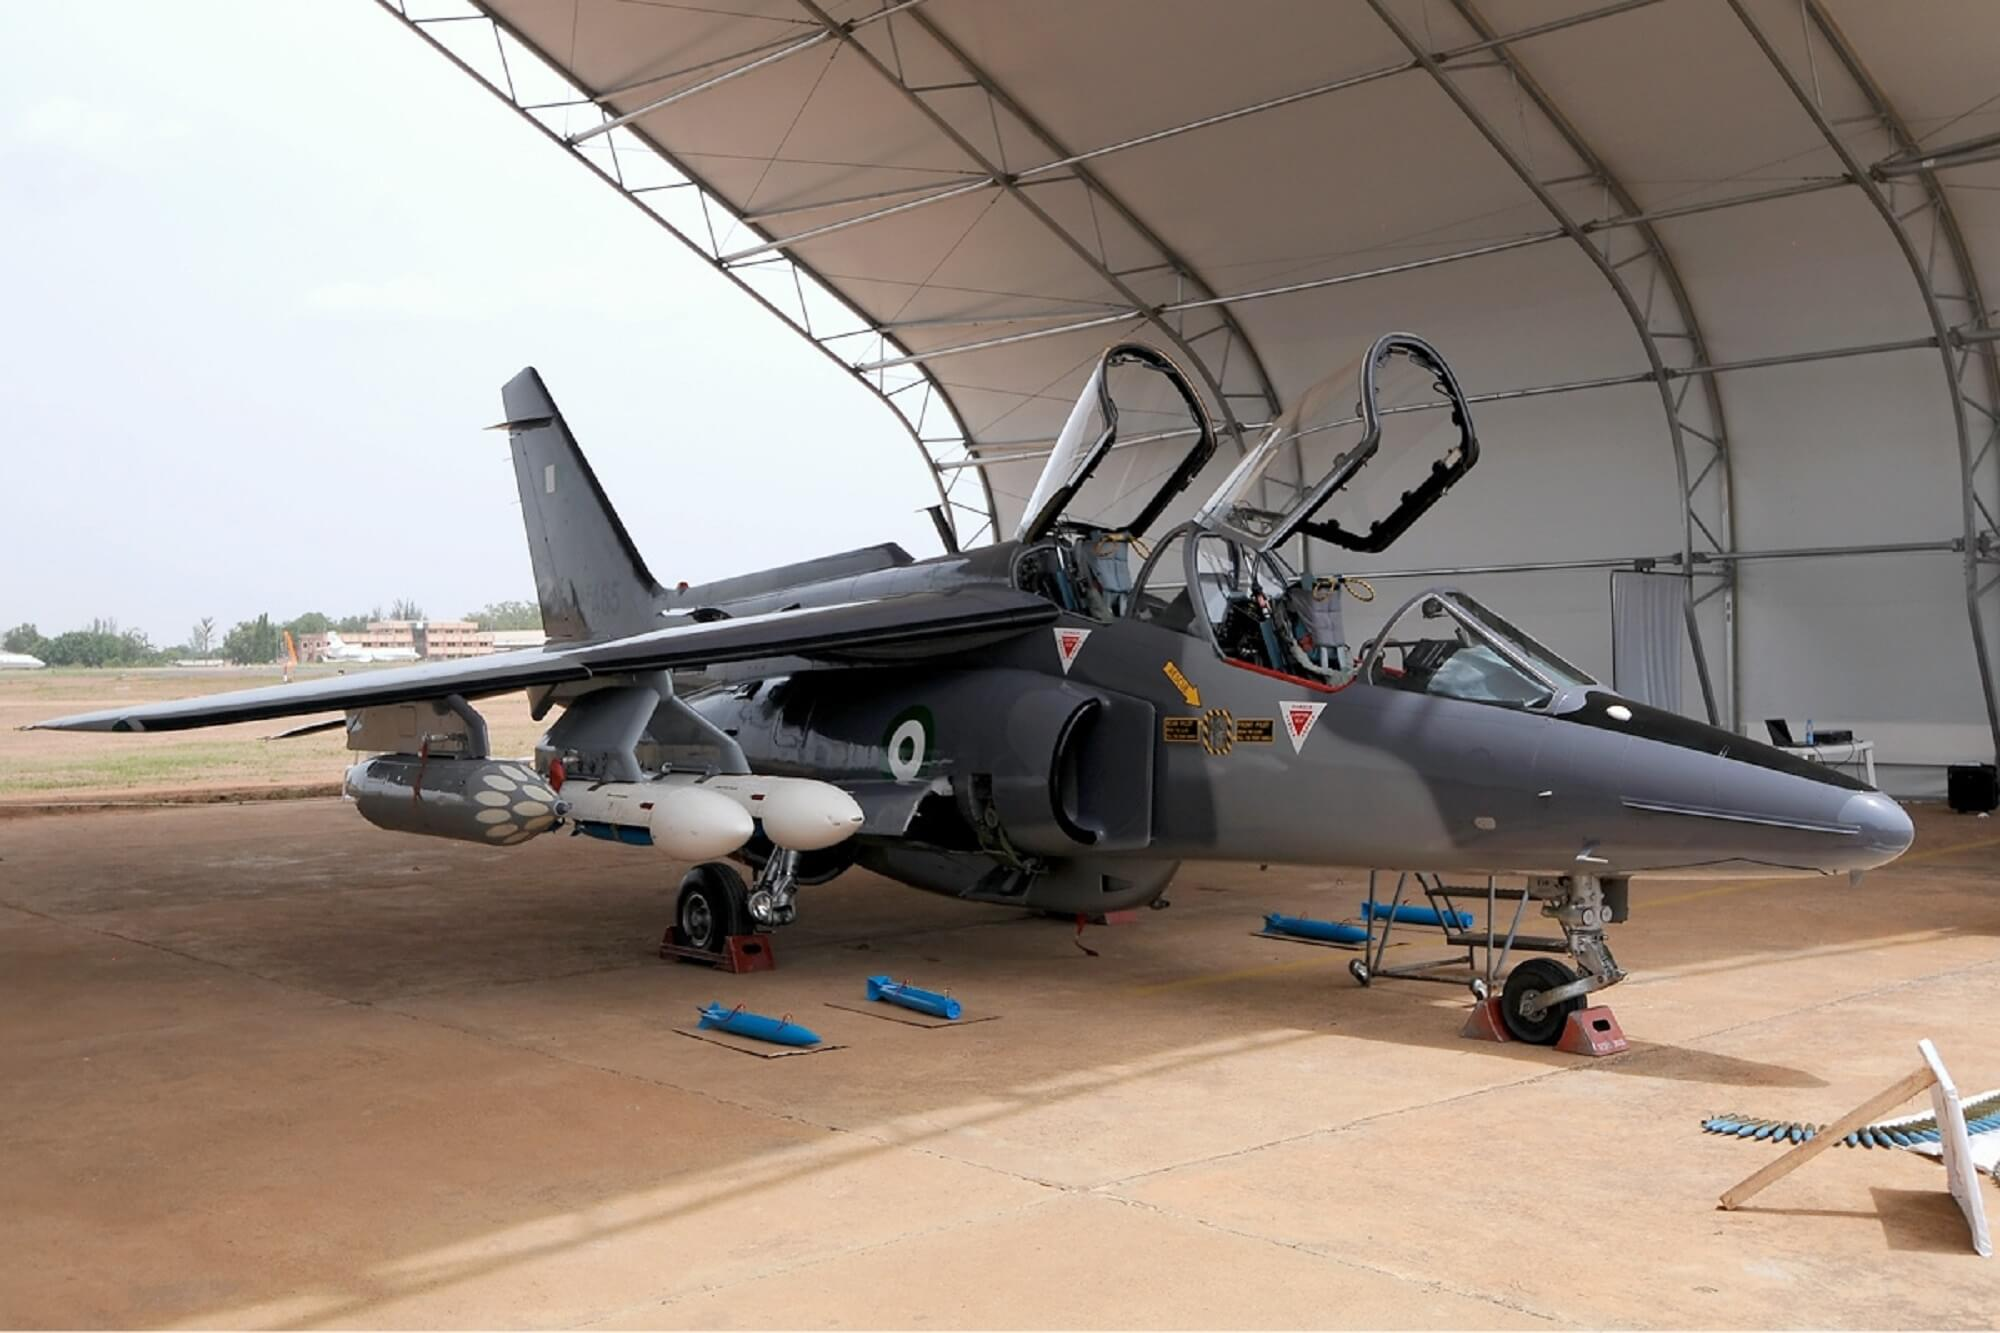 Nigerian Air Force jet goes missing during support mission